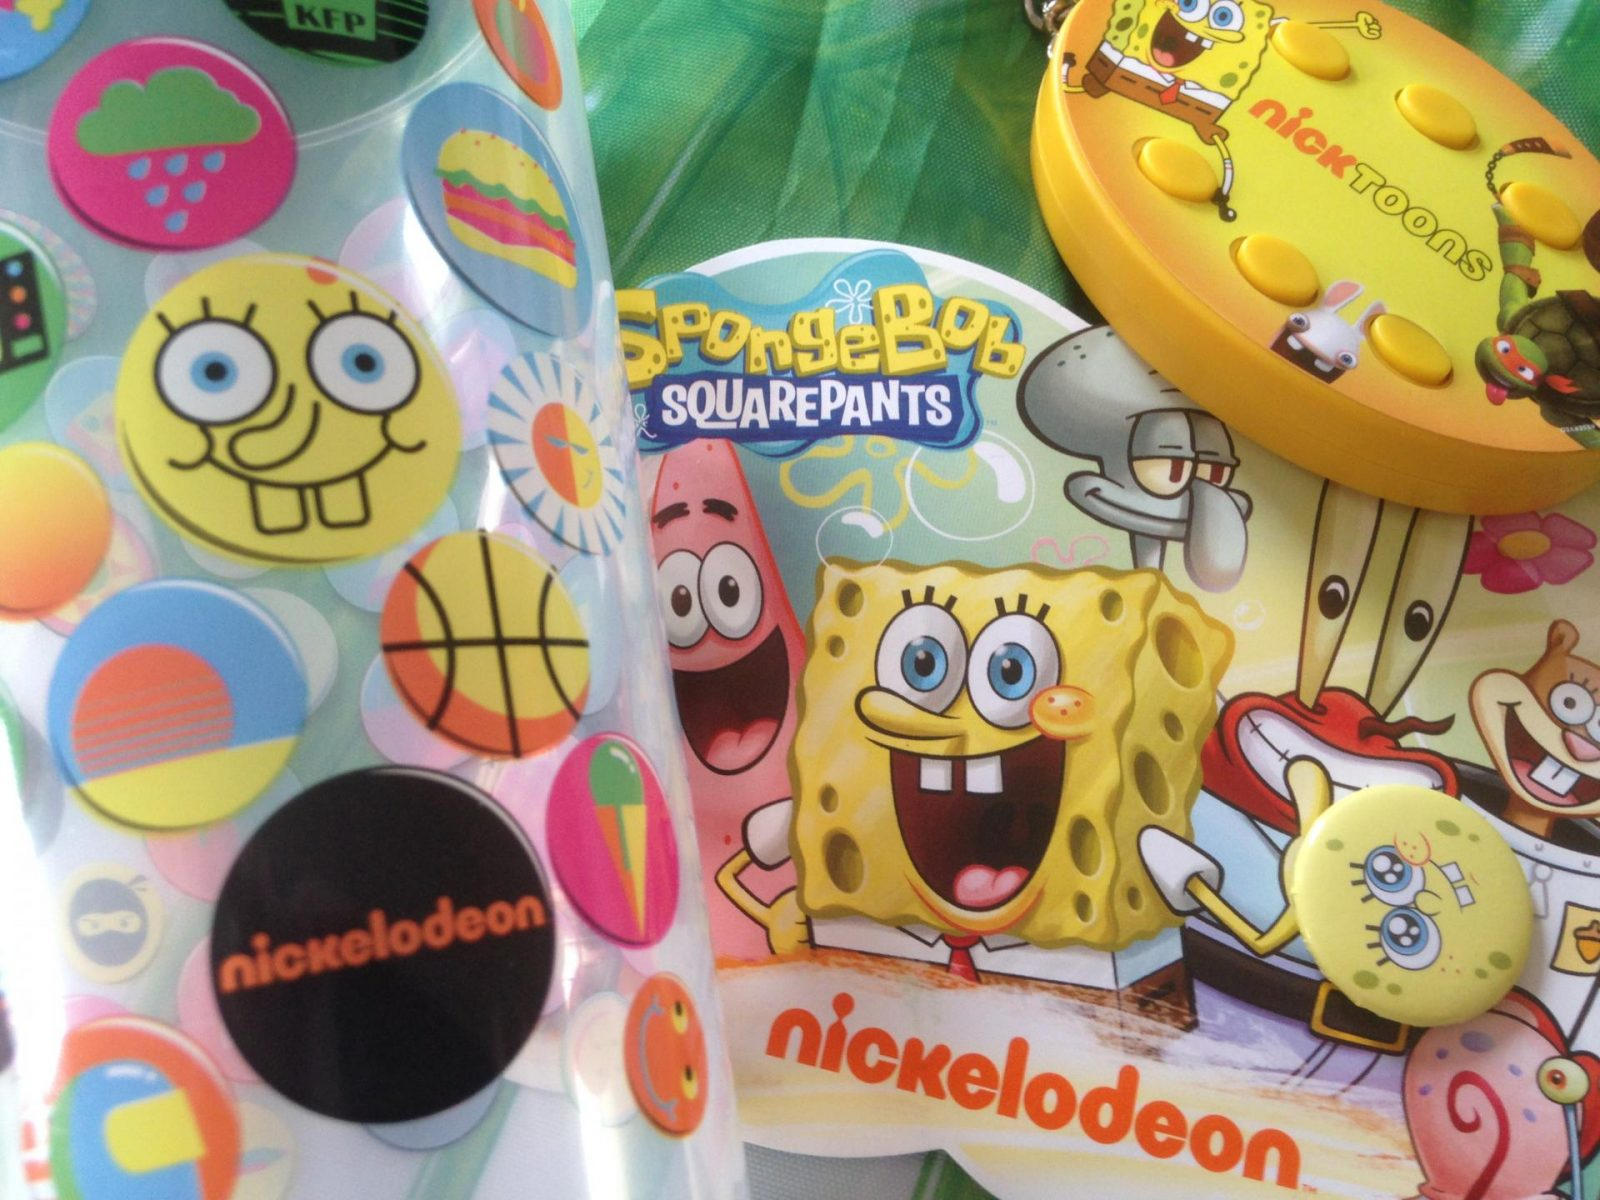 Watch Nickelodeon's SpongeBob SquarePants on NOW TV